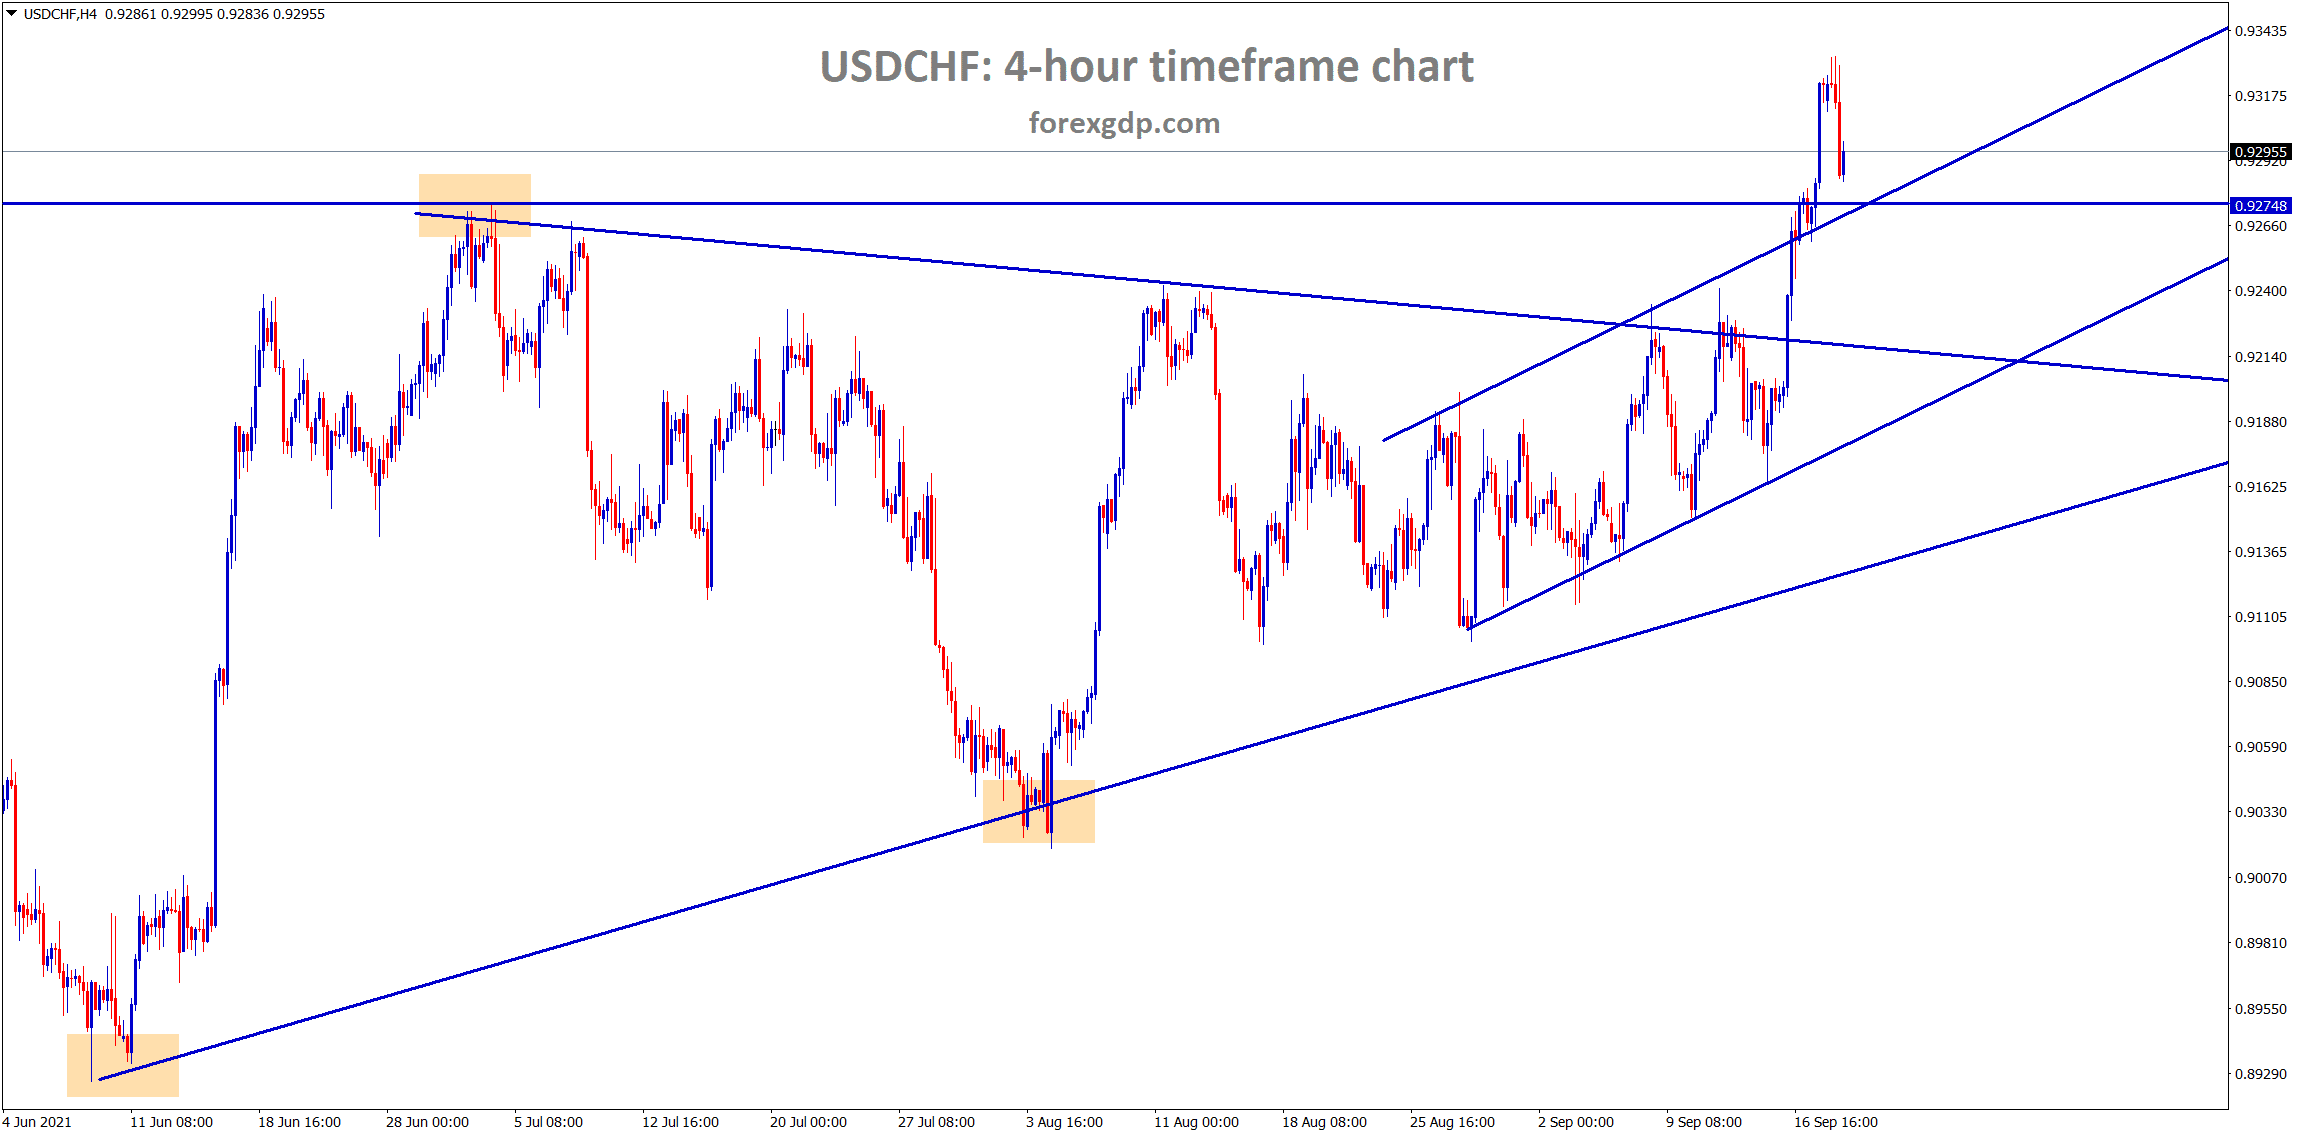 USDCHF has fallen back to the retest area of the horizontal resistance